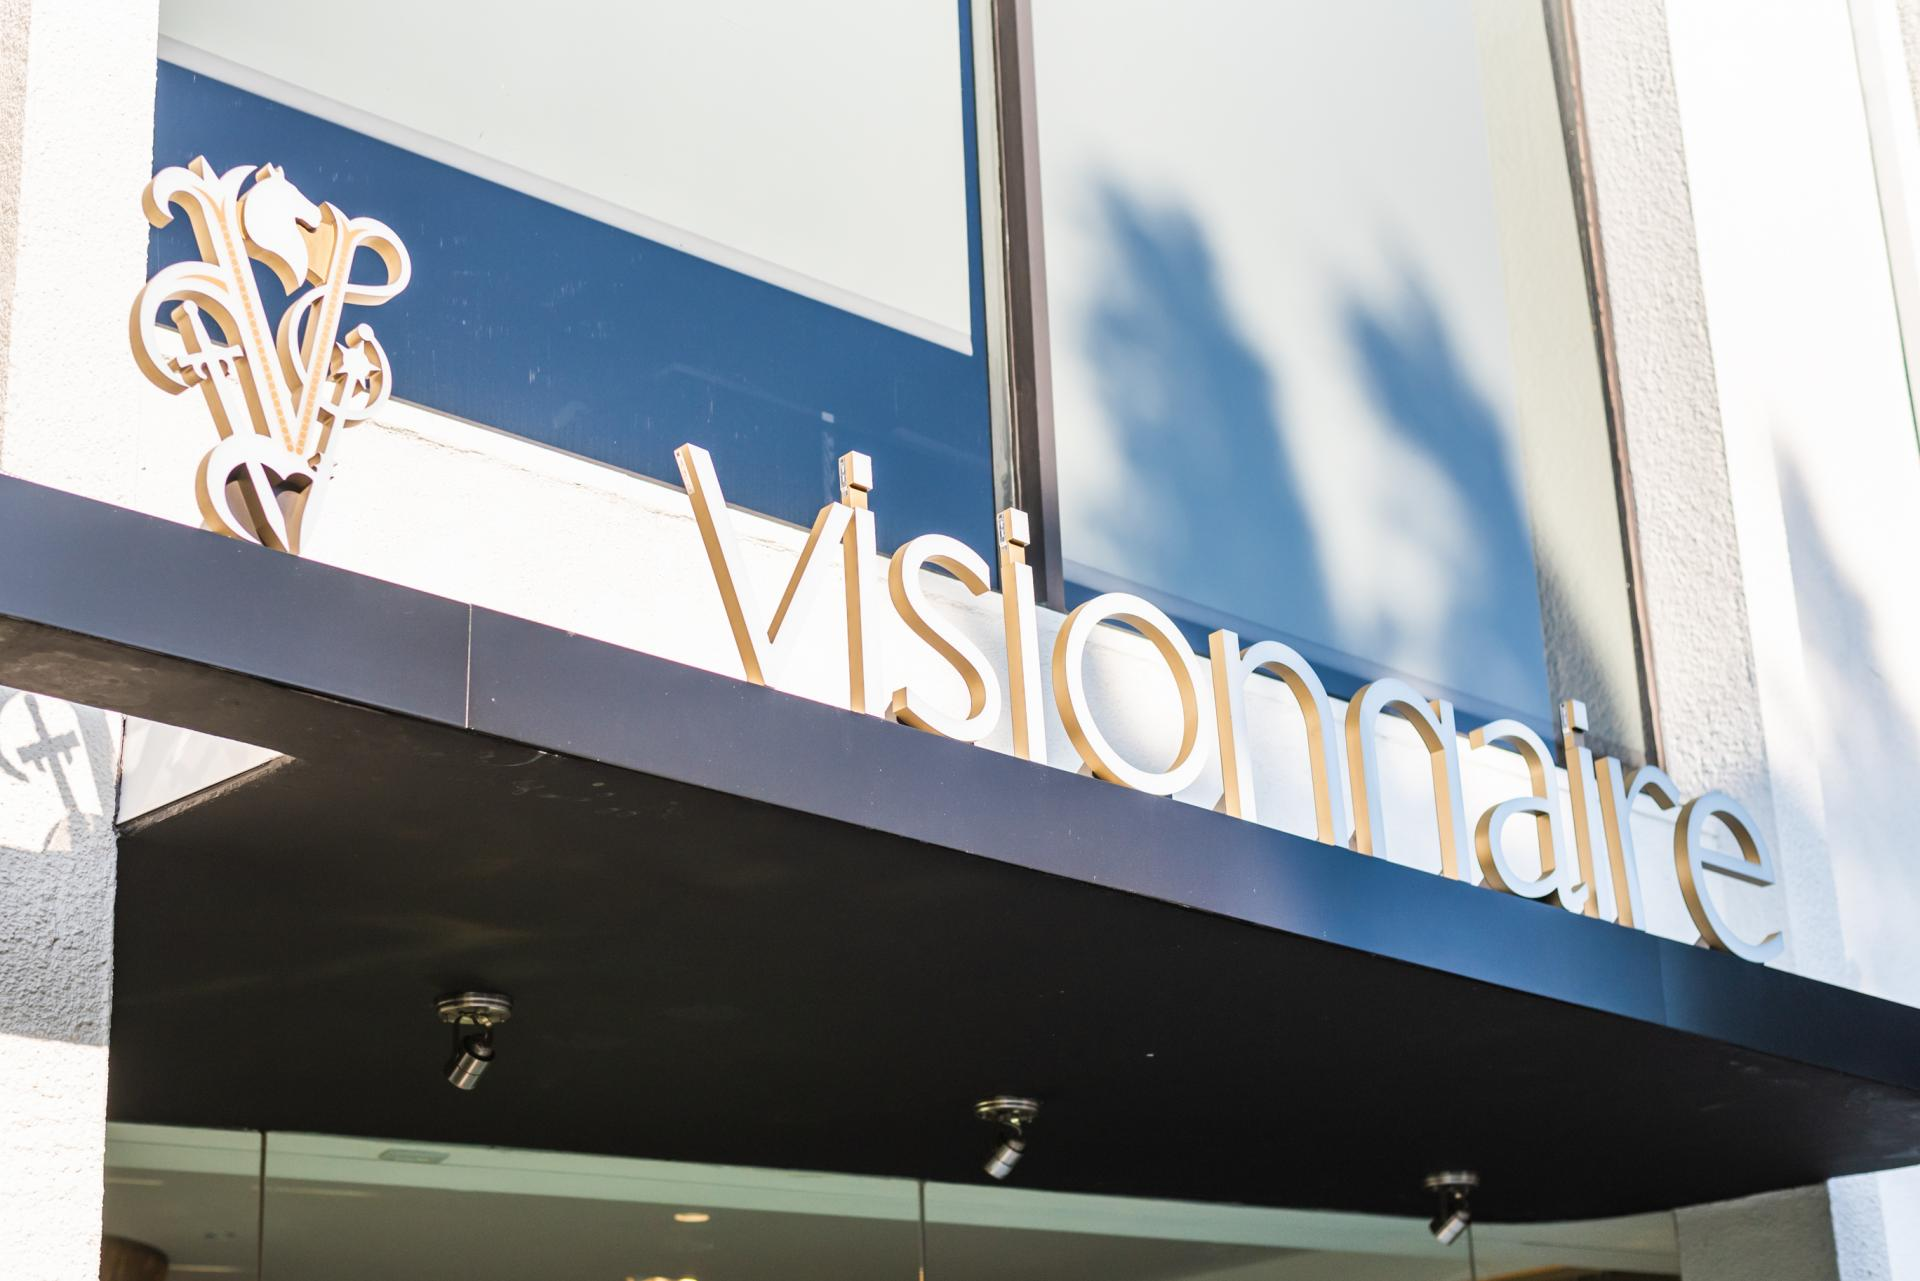 Visionnaire Los Angeles